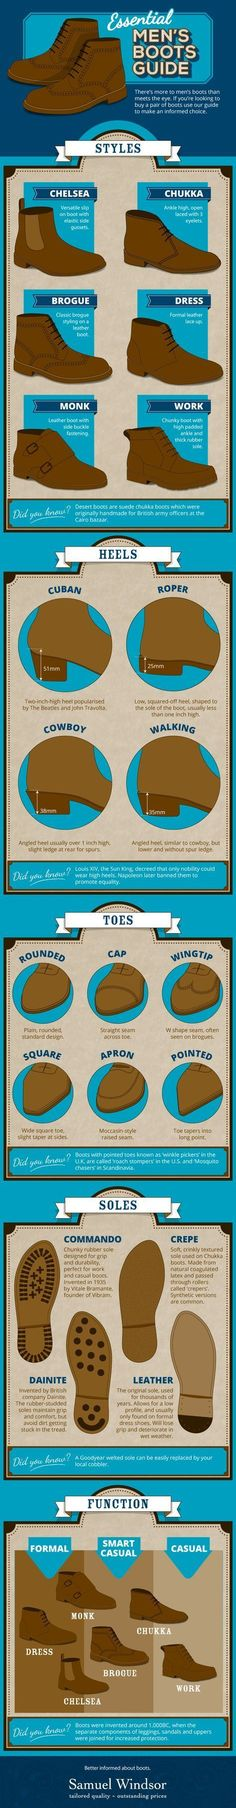 """Do you know your Chelsea from your chukka? Your monk from your brogue? Should… - http://sorihe.com/mensshoes/2018/02/12/do-you-know-your-chelsea-from-your-chukka-your-monk-from-your-brogue-should/ #InfographicsFashion"